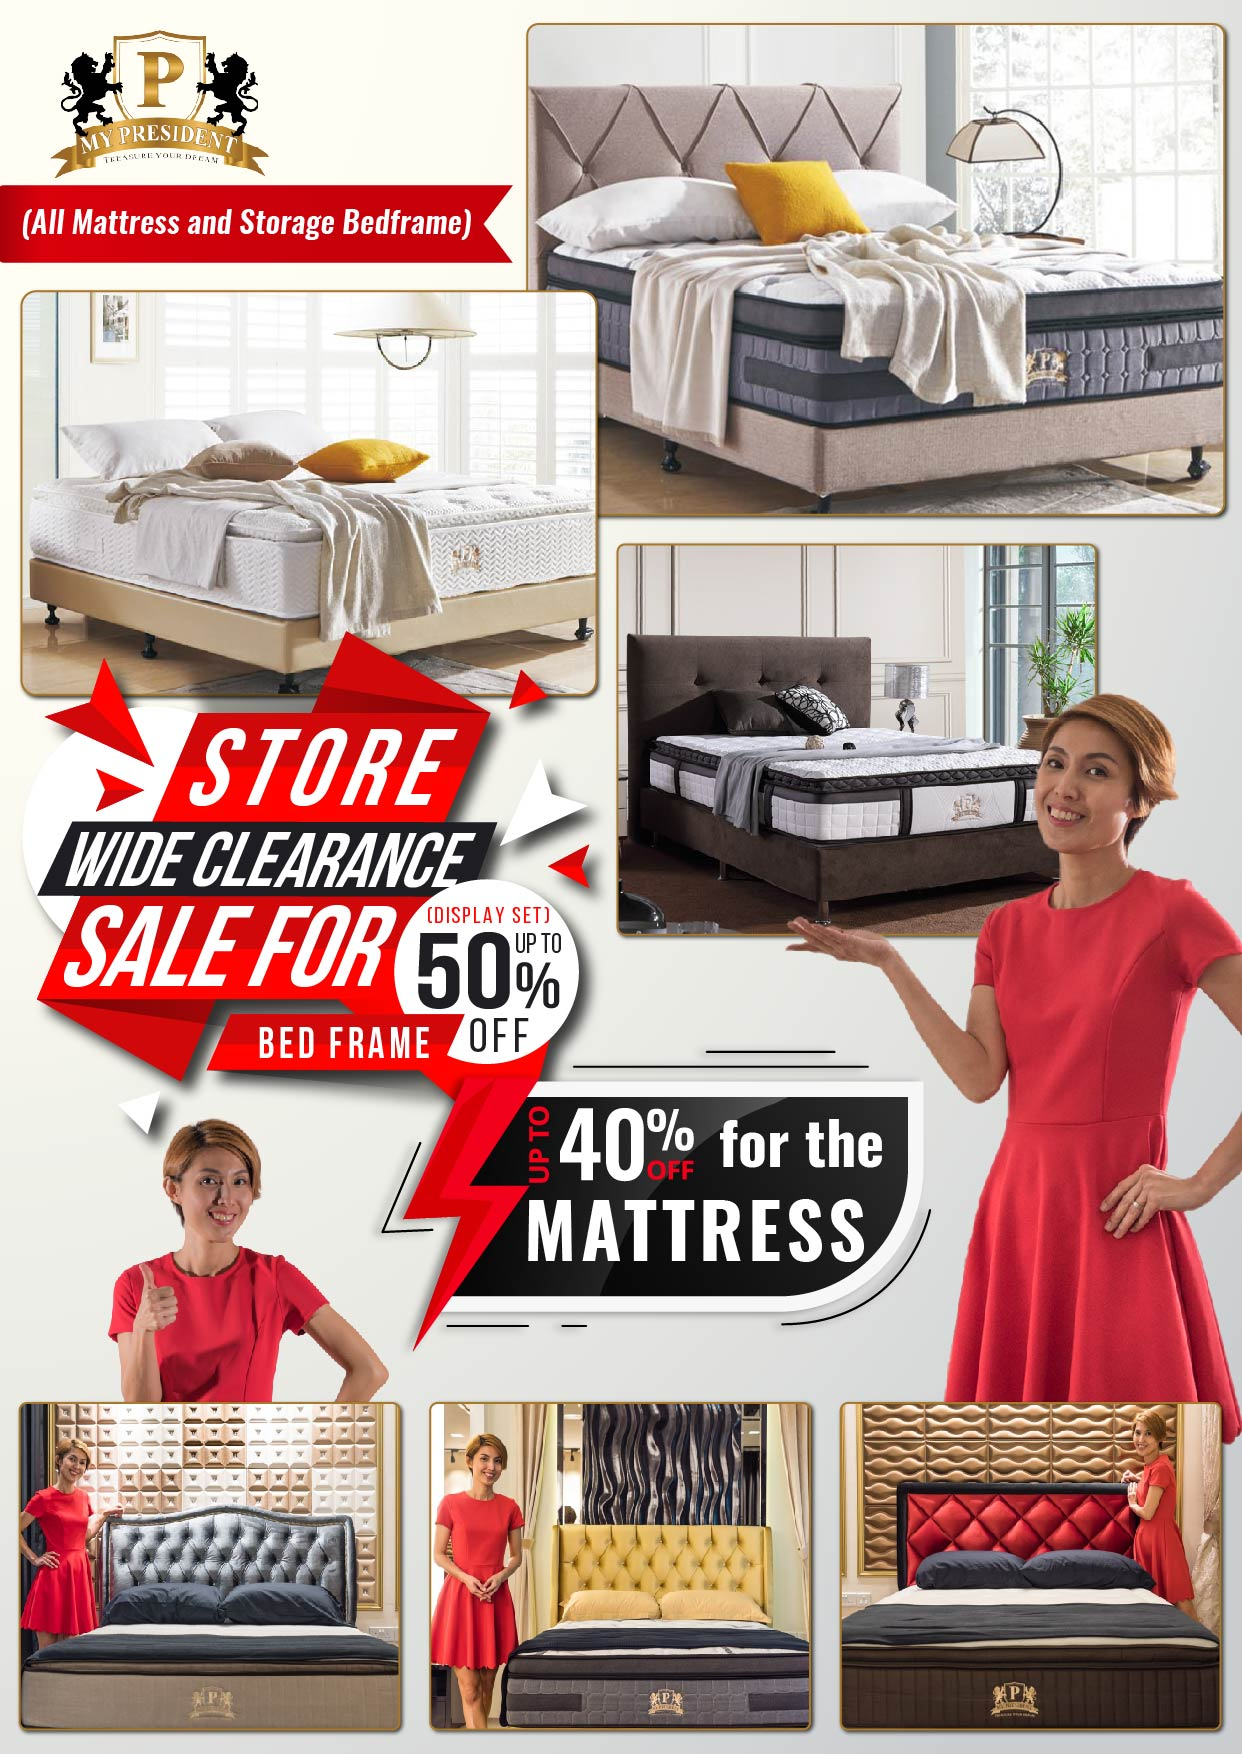 My President Mattress Clearance Sale